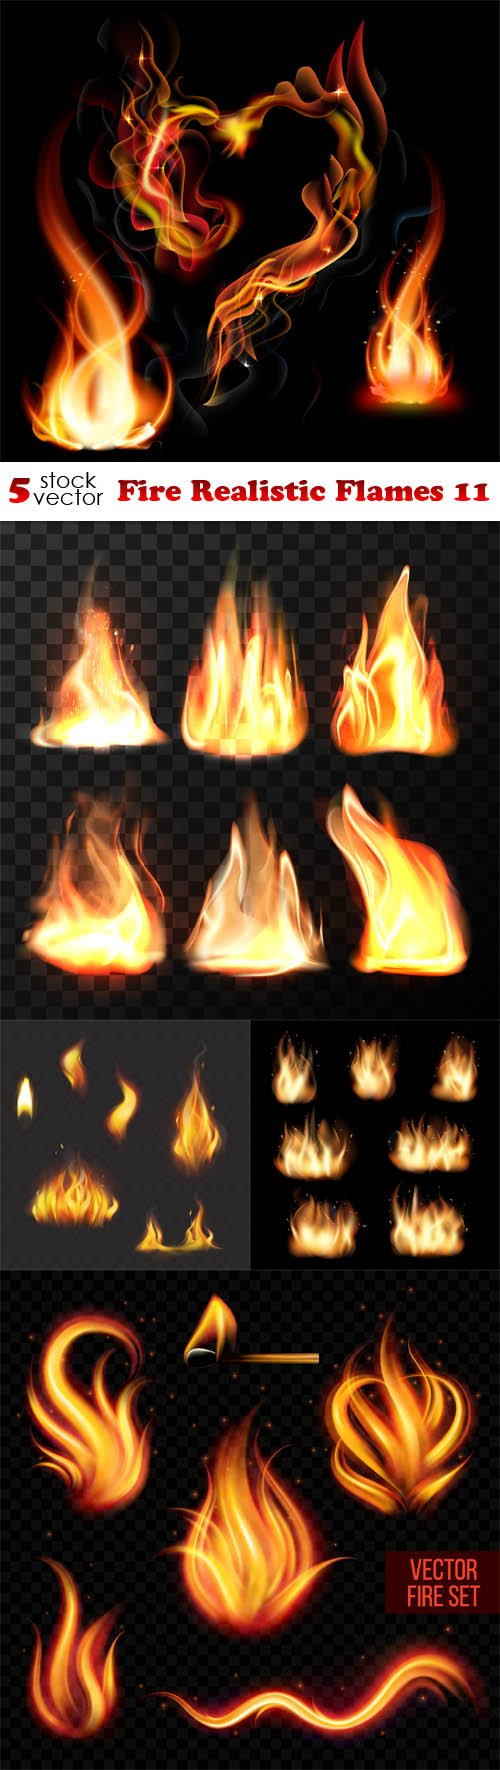 Vectors - Fire Realistic Flames 11